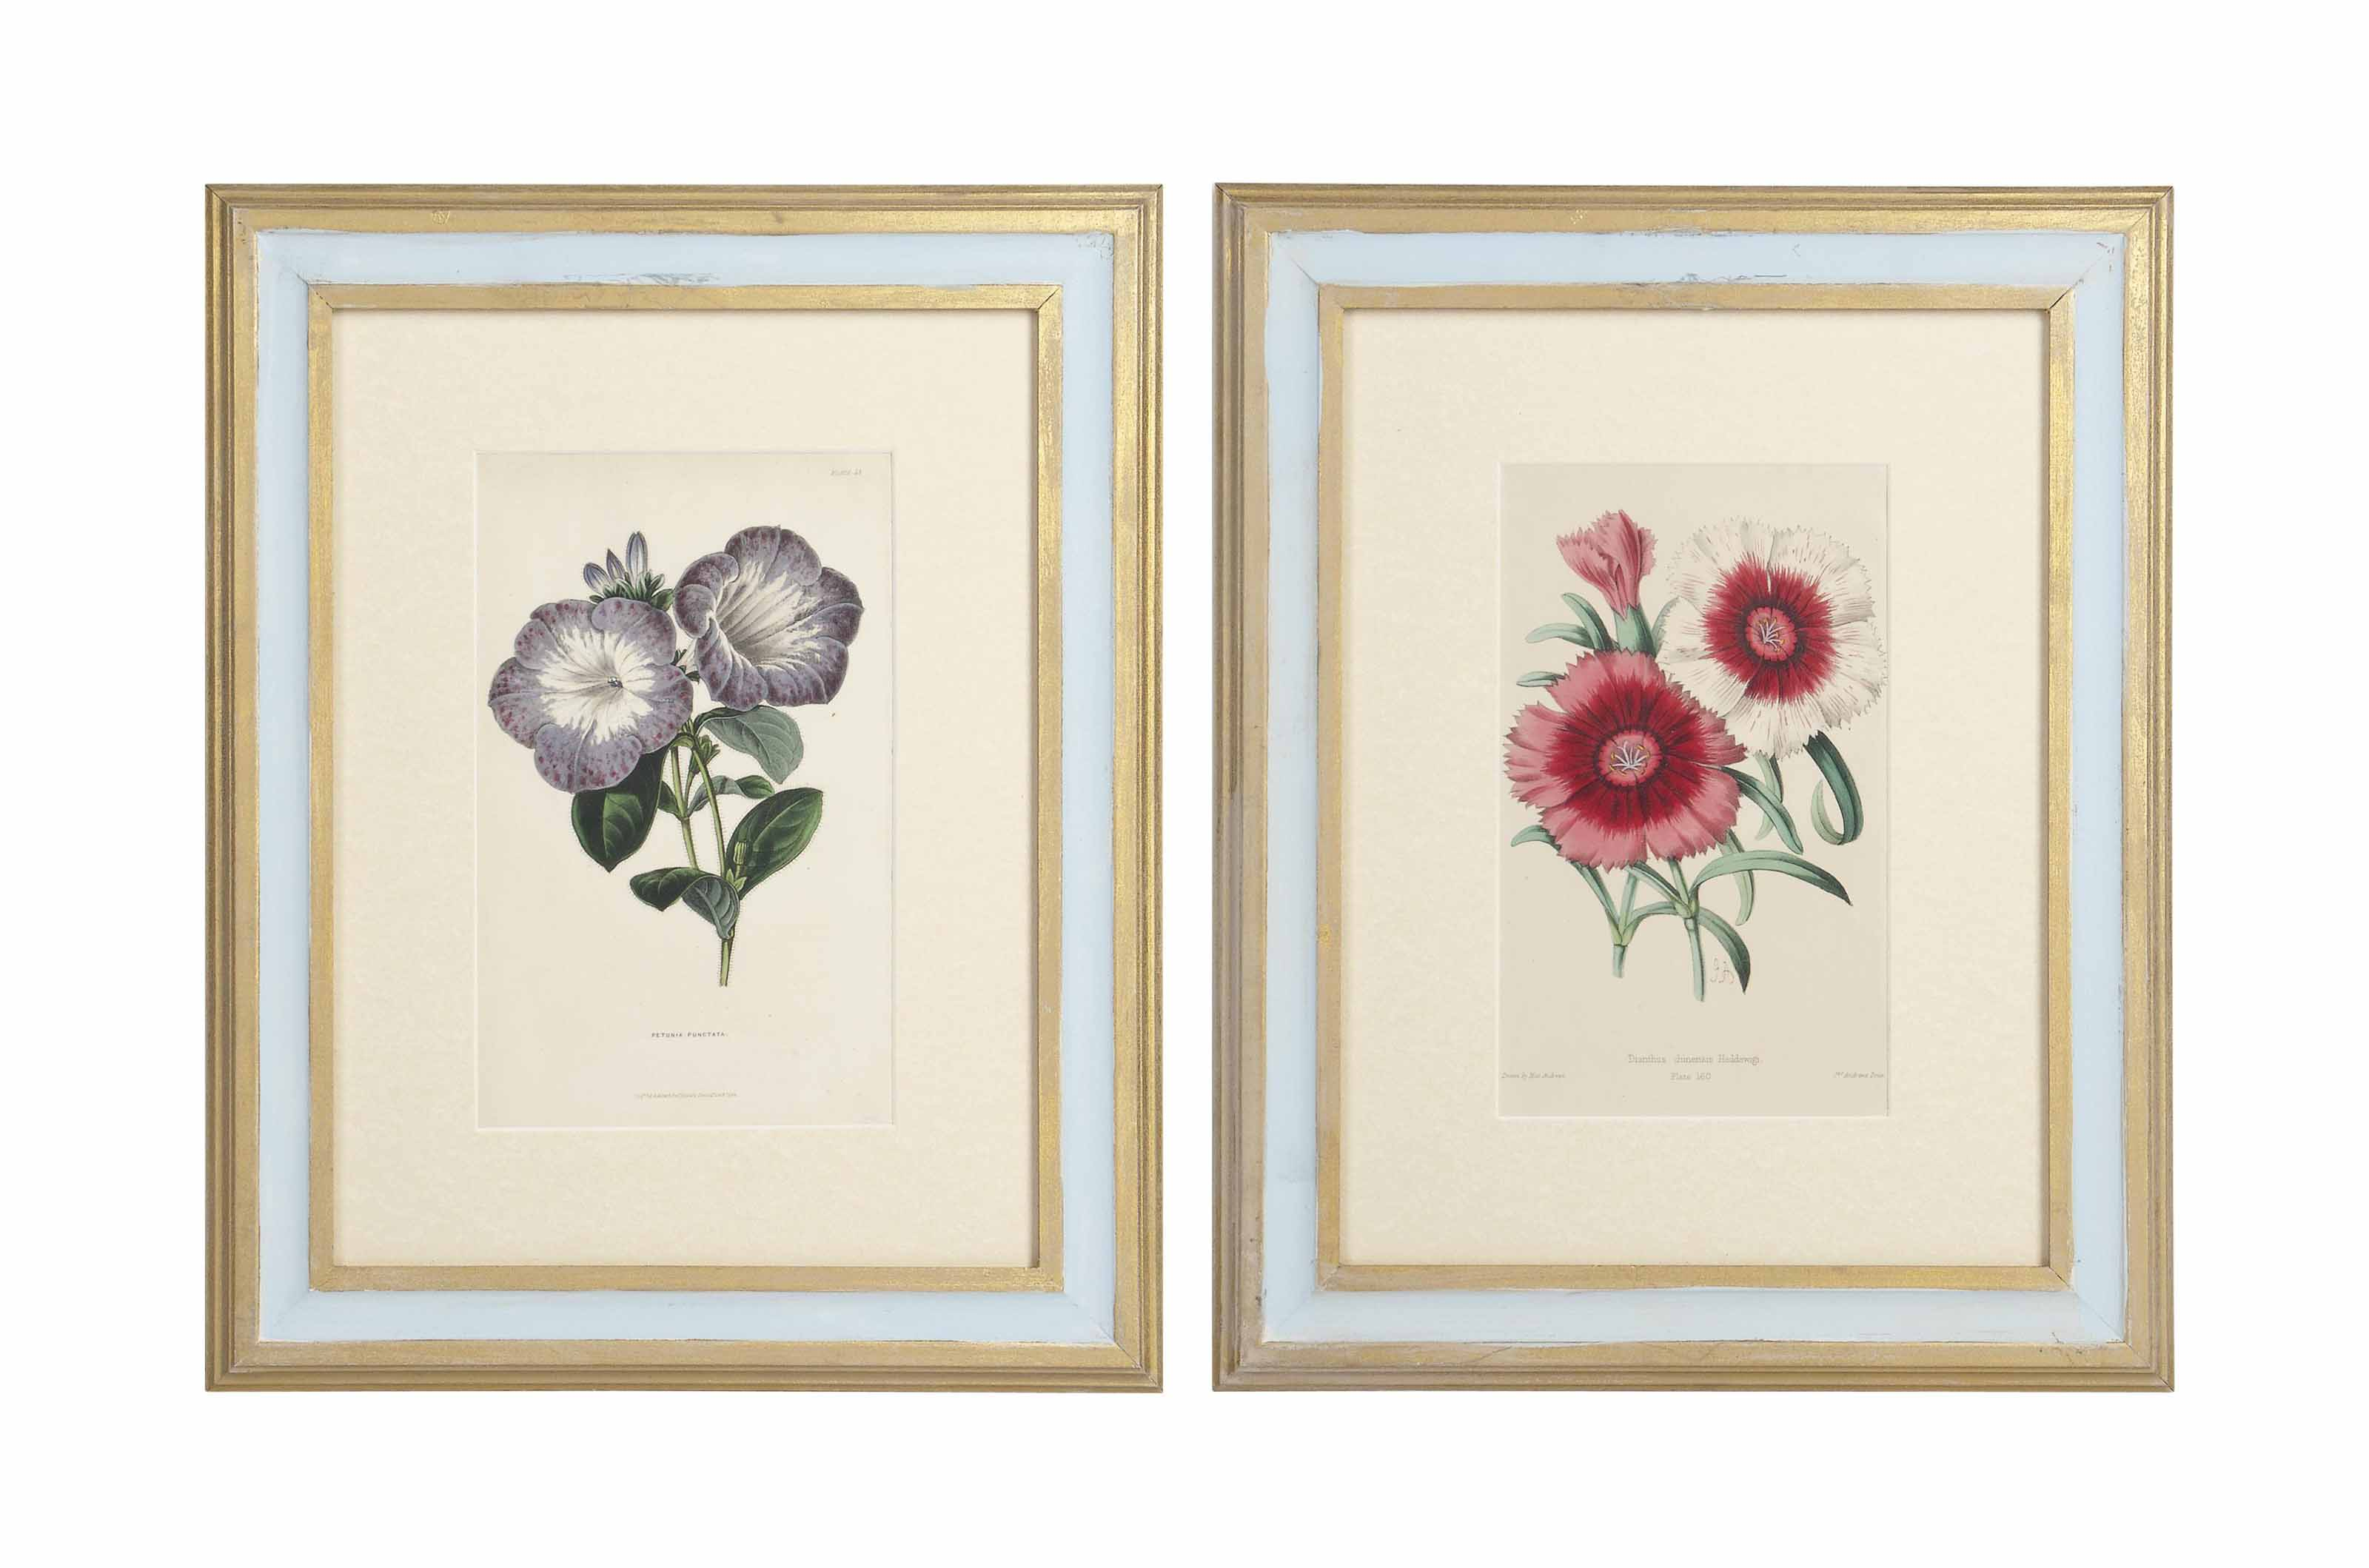 TWELVE ENGRAVINGS OF FLOWERS